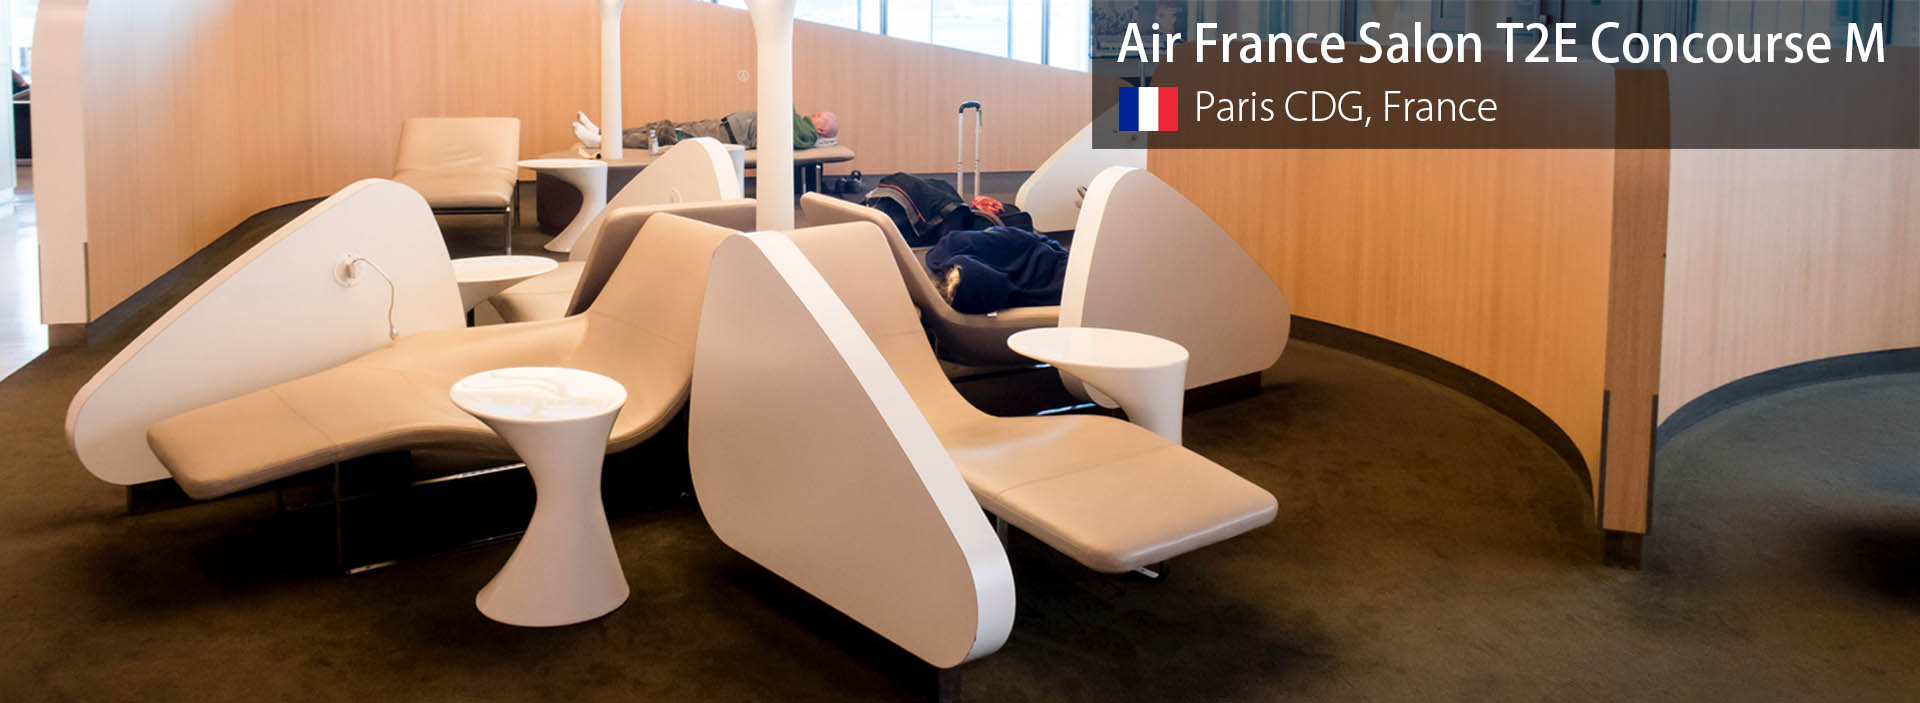 Lounge Review: Air France Salon Terminal 2E Concourse M at Paris Charles de Gaulle